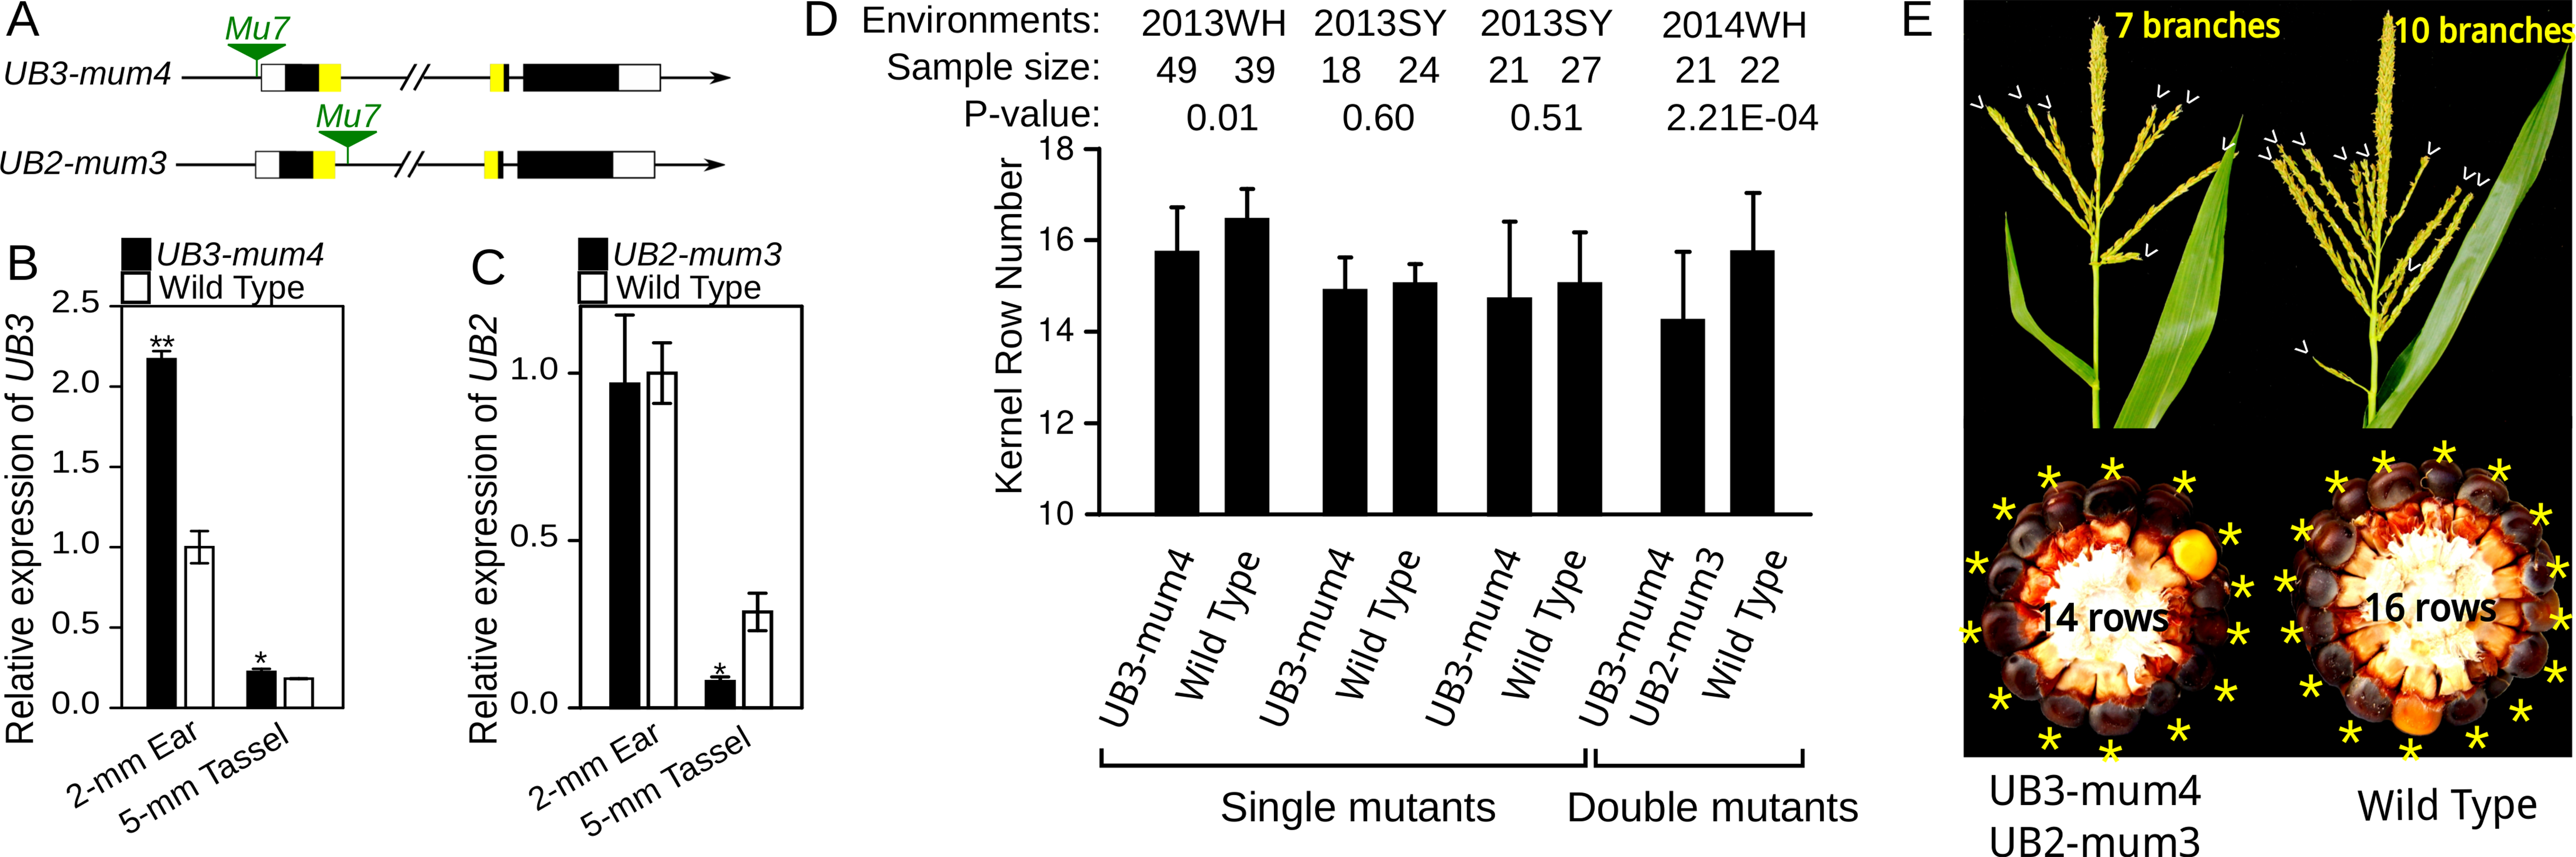 Expression analysis and phenotypic characterization of <i>UB3-mum4</i> and <i>UB2-mum3</i> mutants.